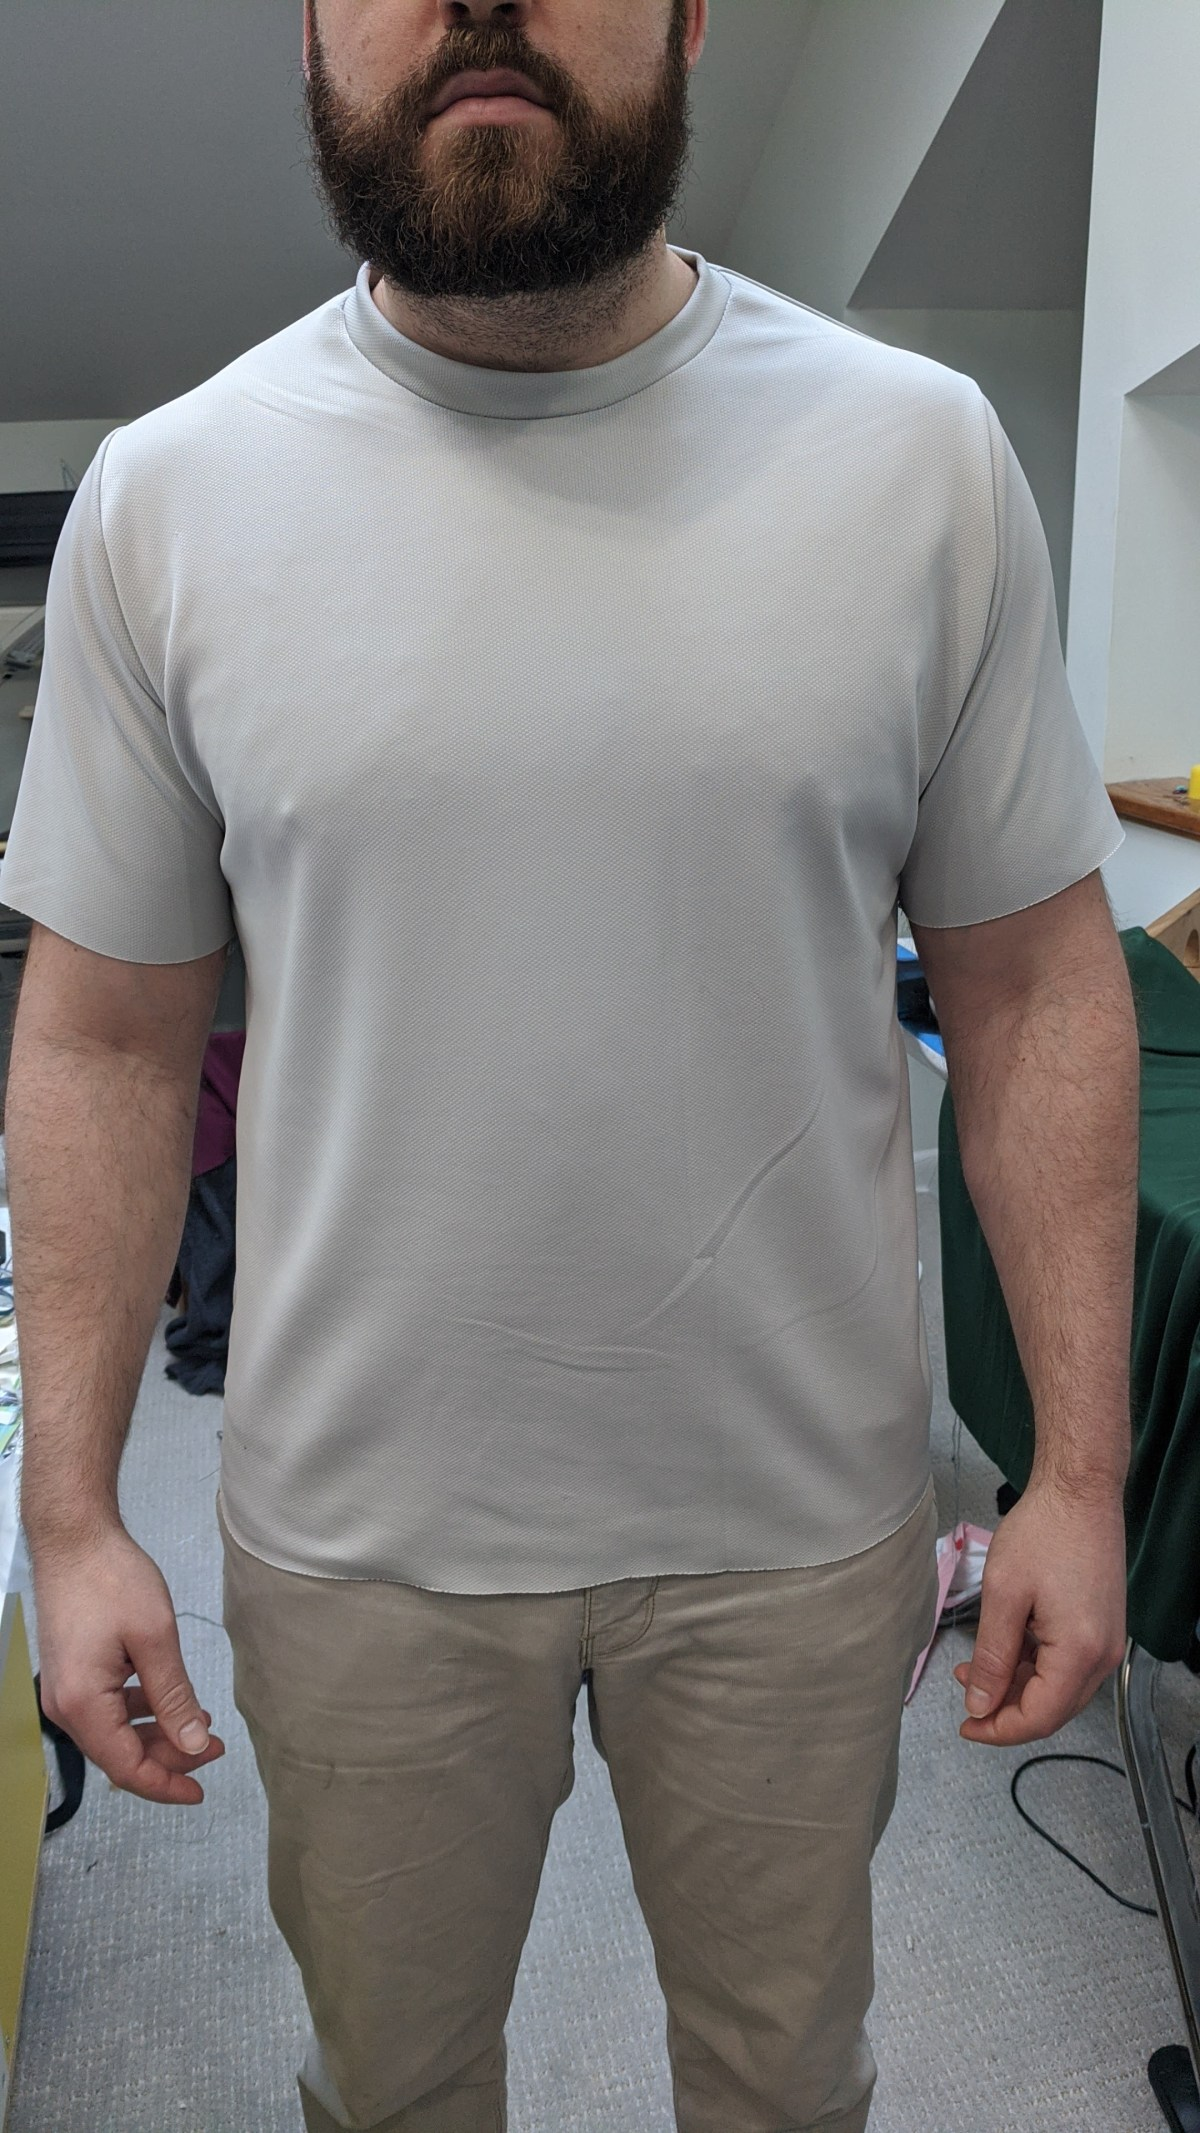 A photo of the author's husband wearing the final muslin, a plain tee shirt in a light grey colour.